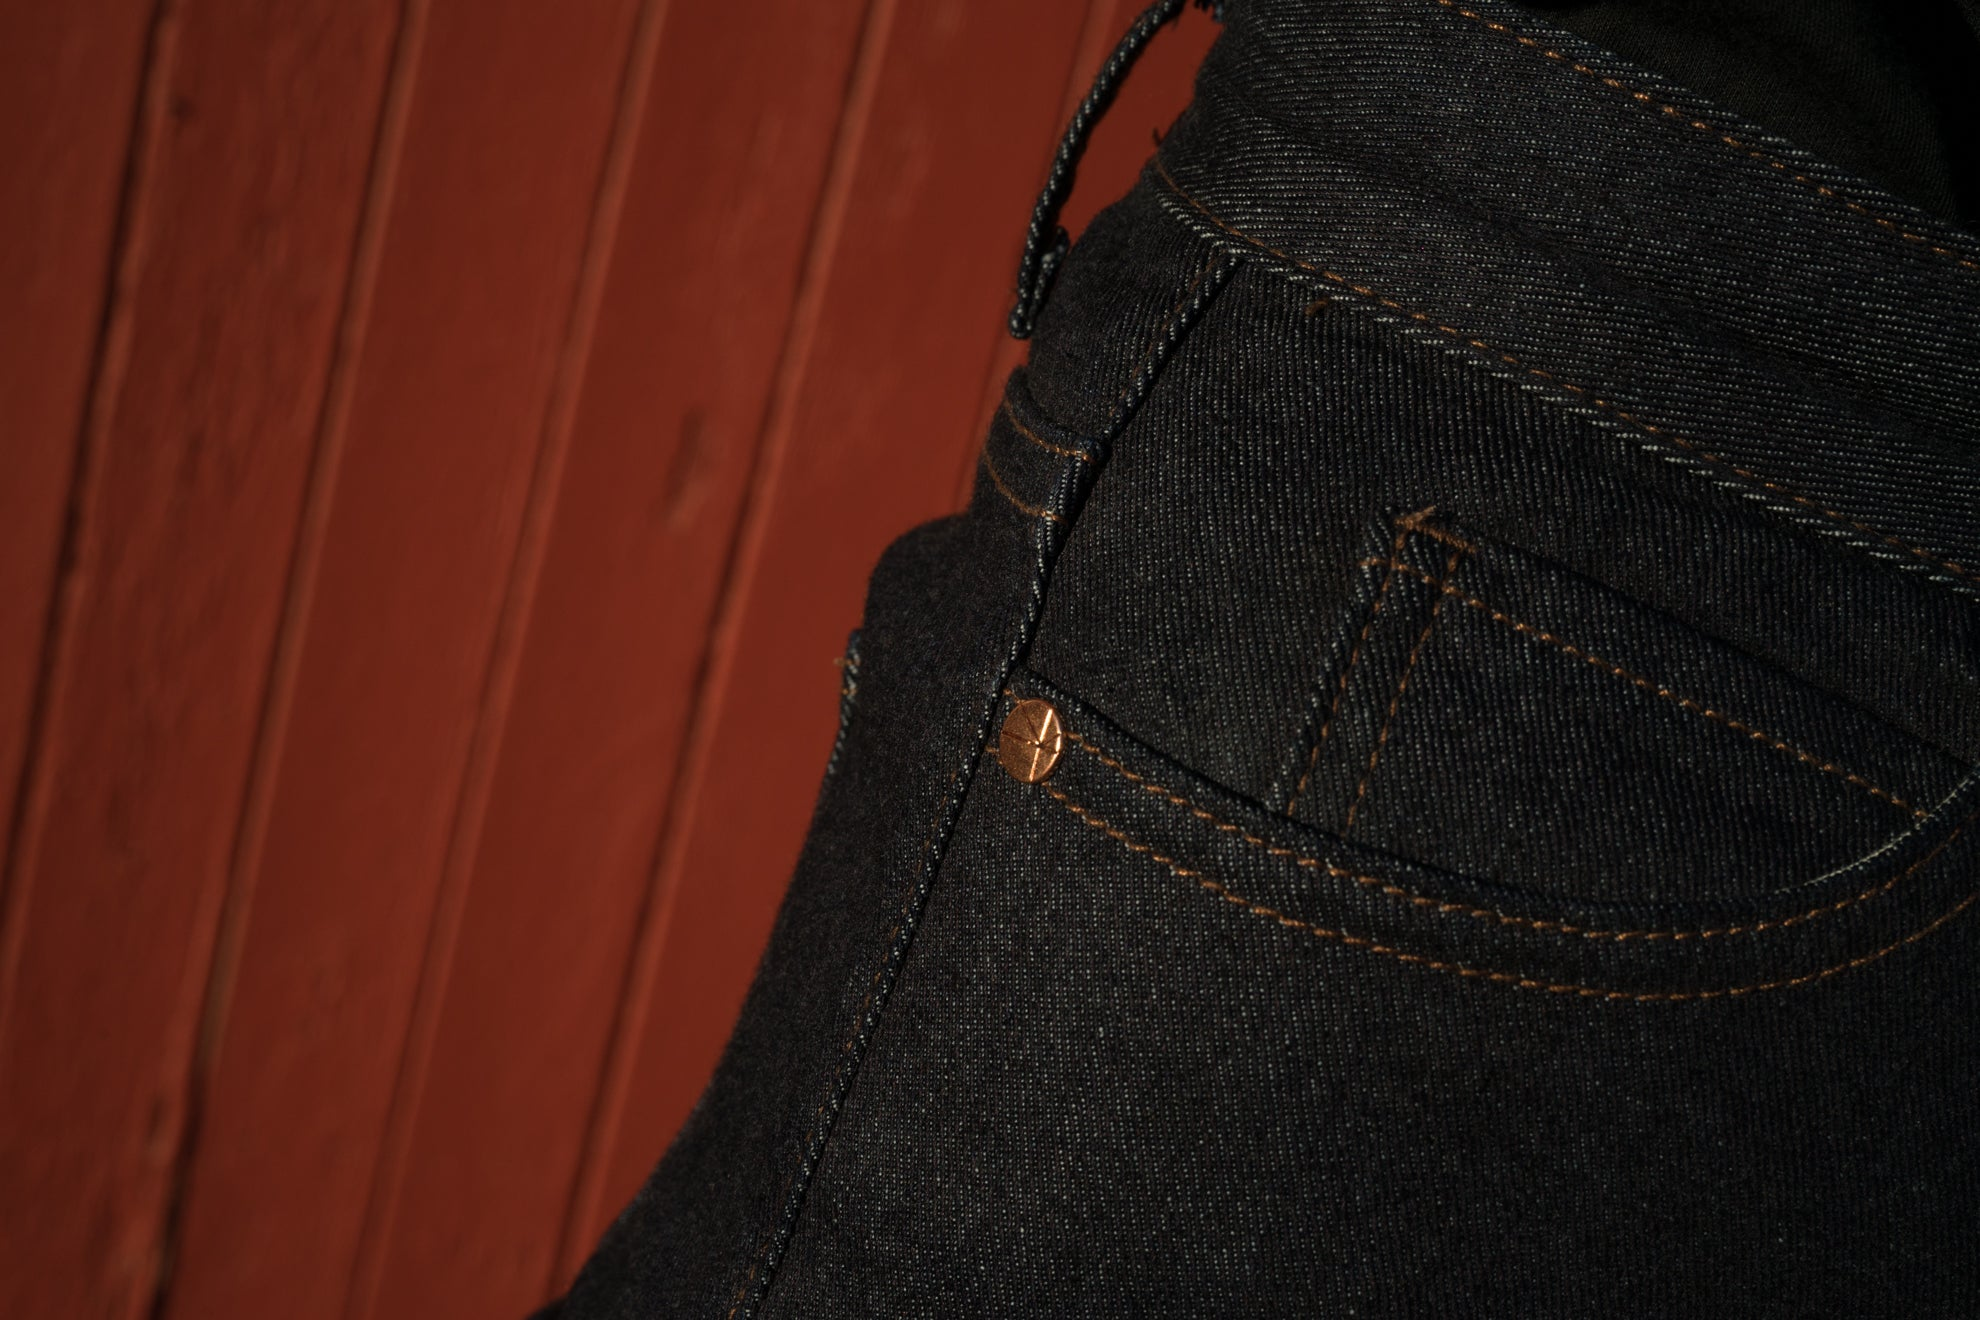 SKINNY (HIGH WAISTED) / 01 (RAW) - Doublewood